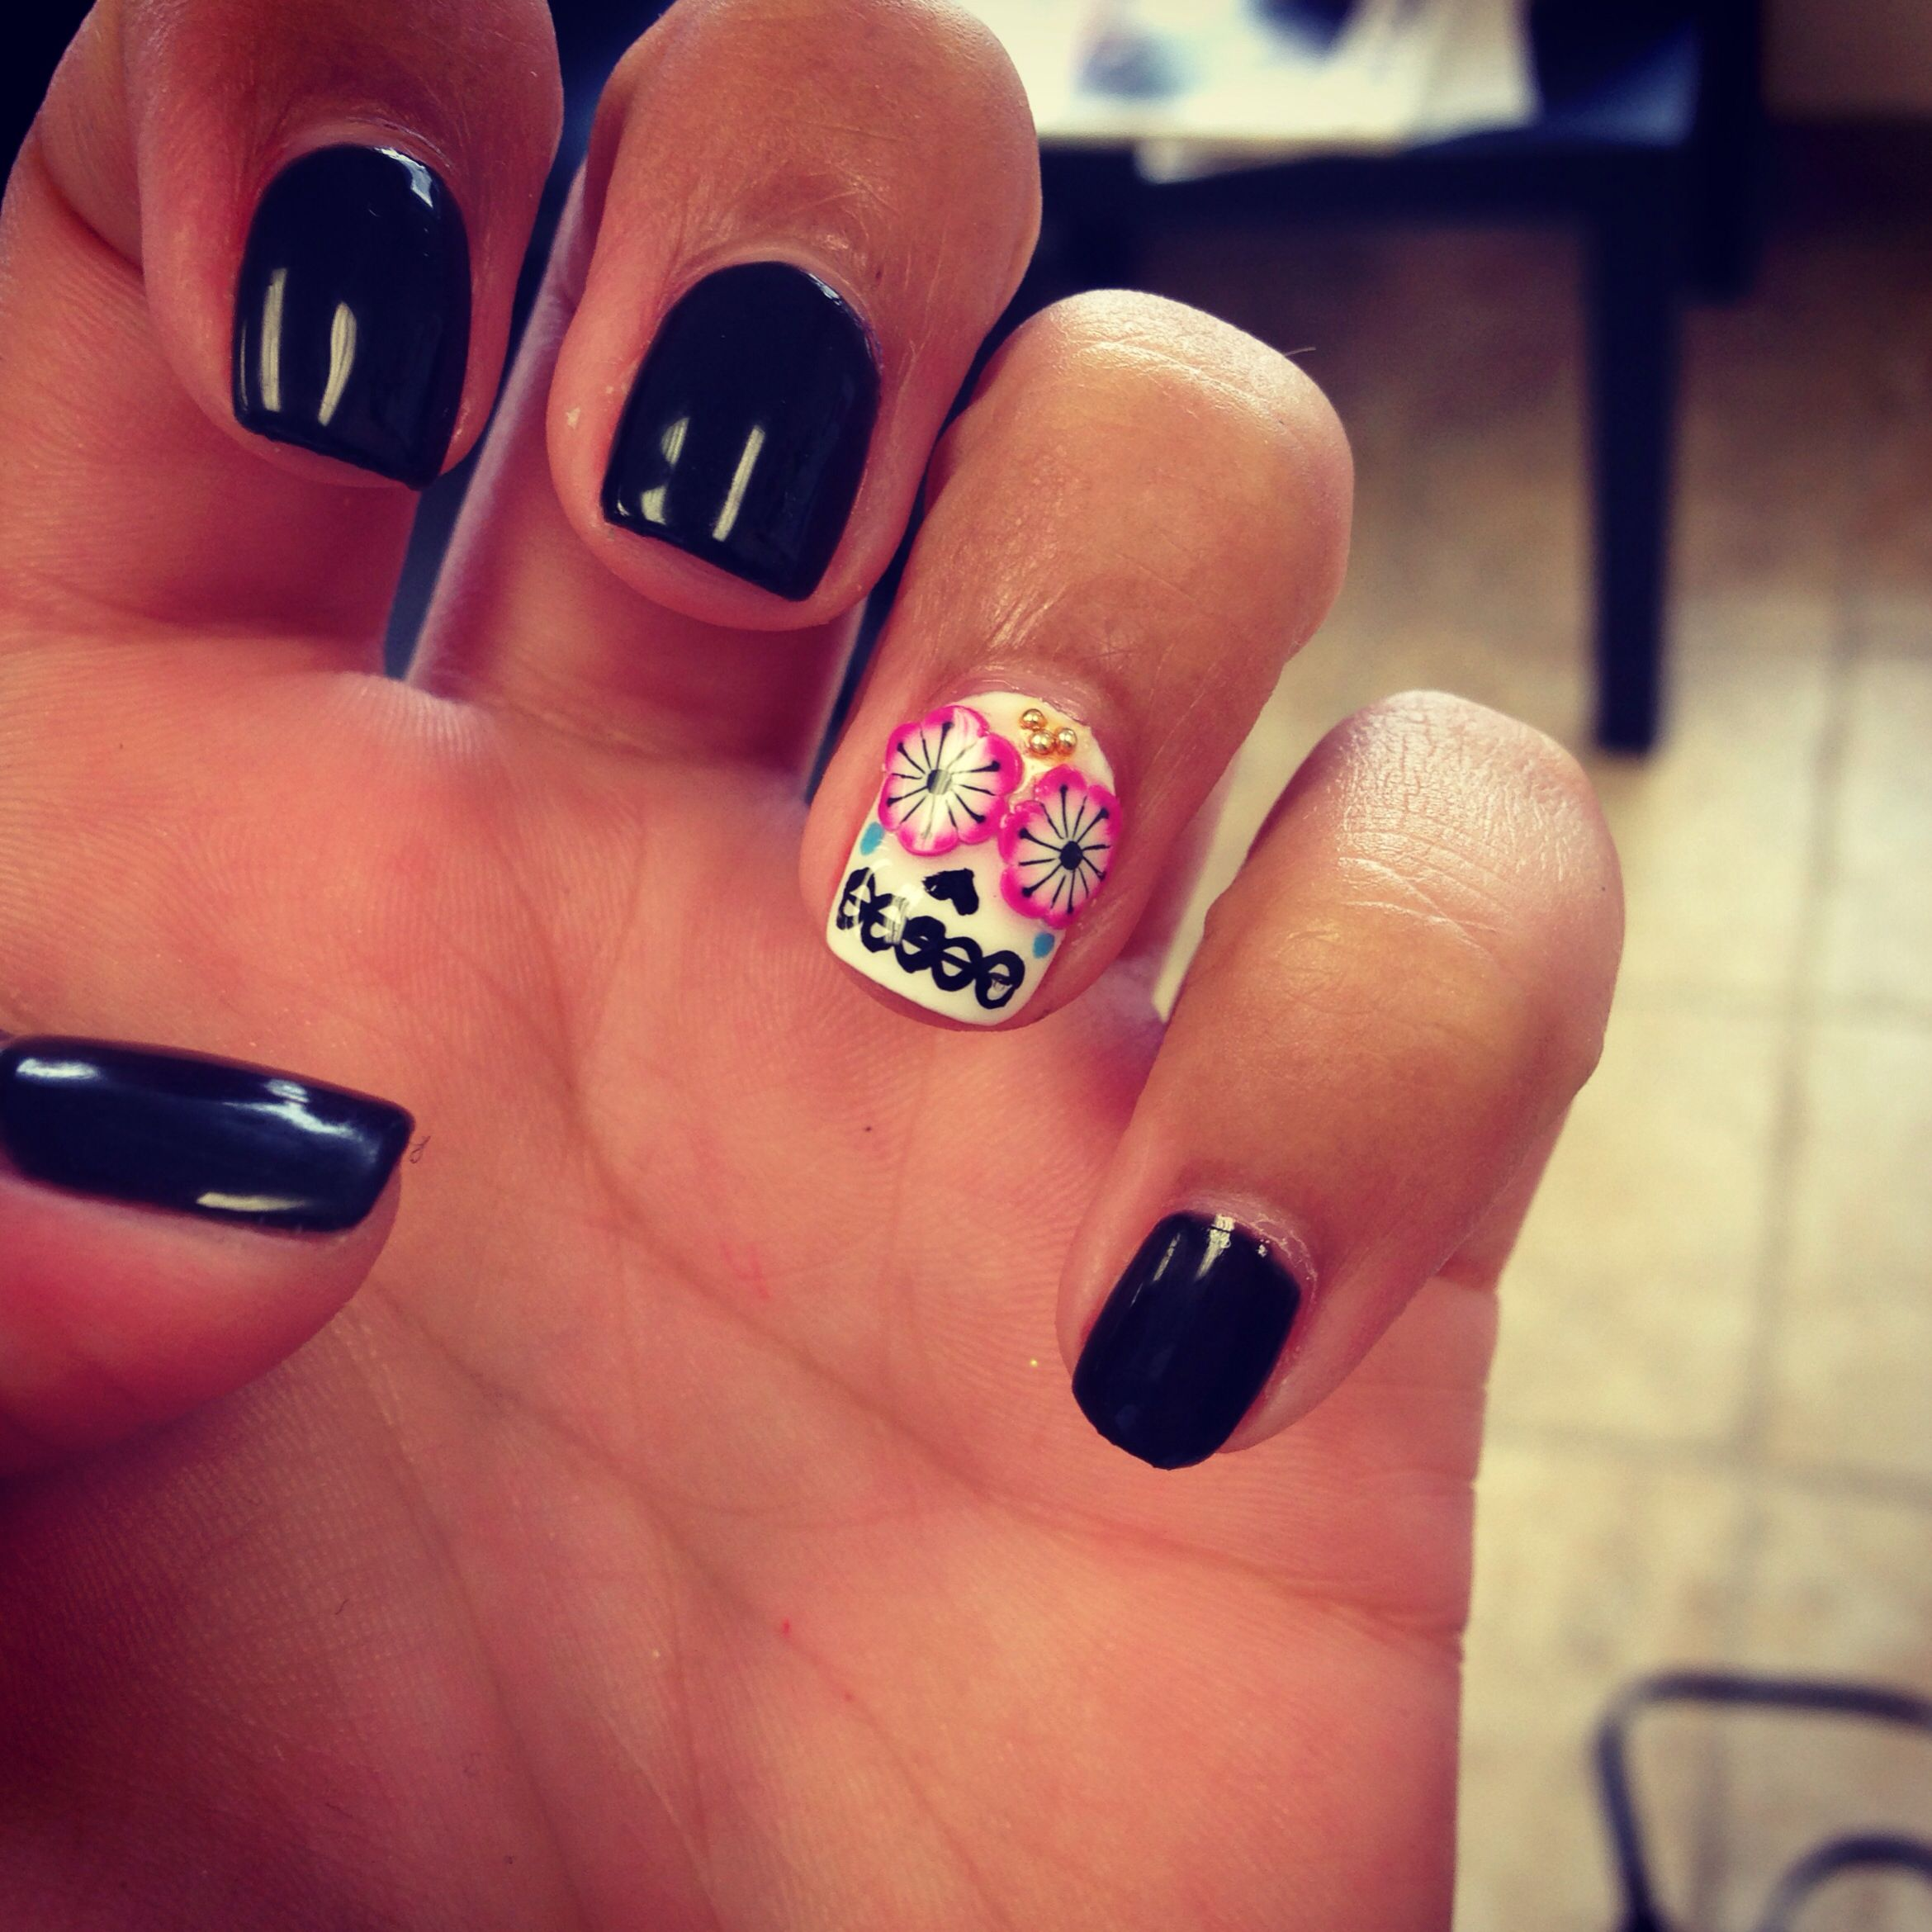 Dia de Los muertos- sugar skull nails #exclusivenails #nailart ...